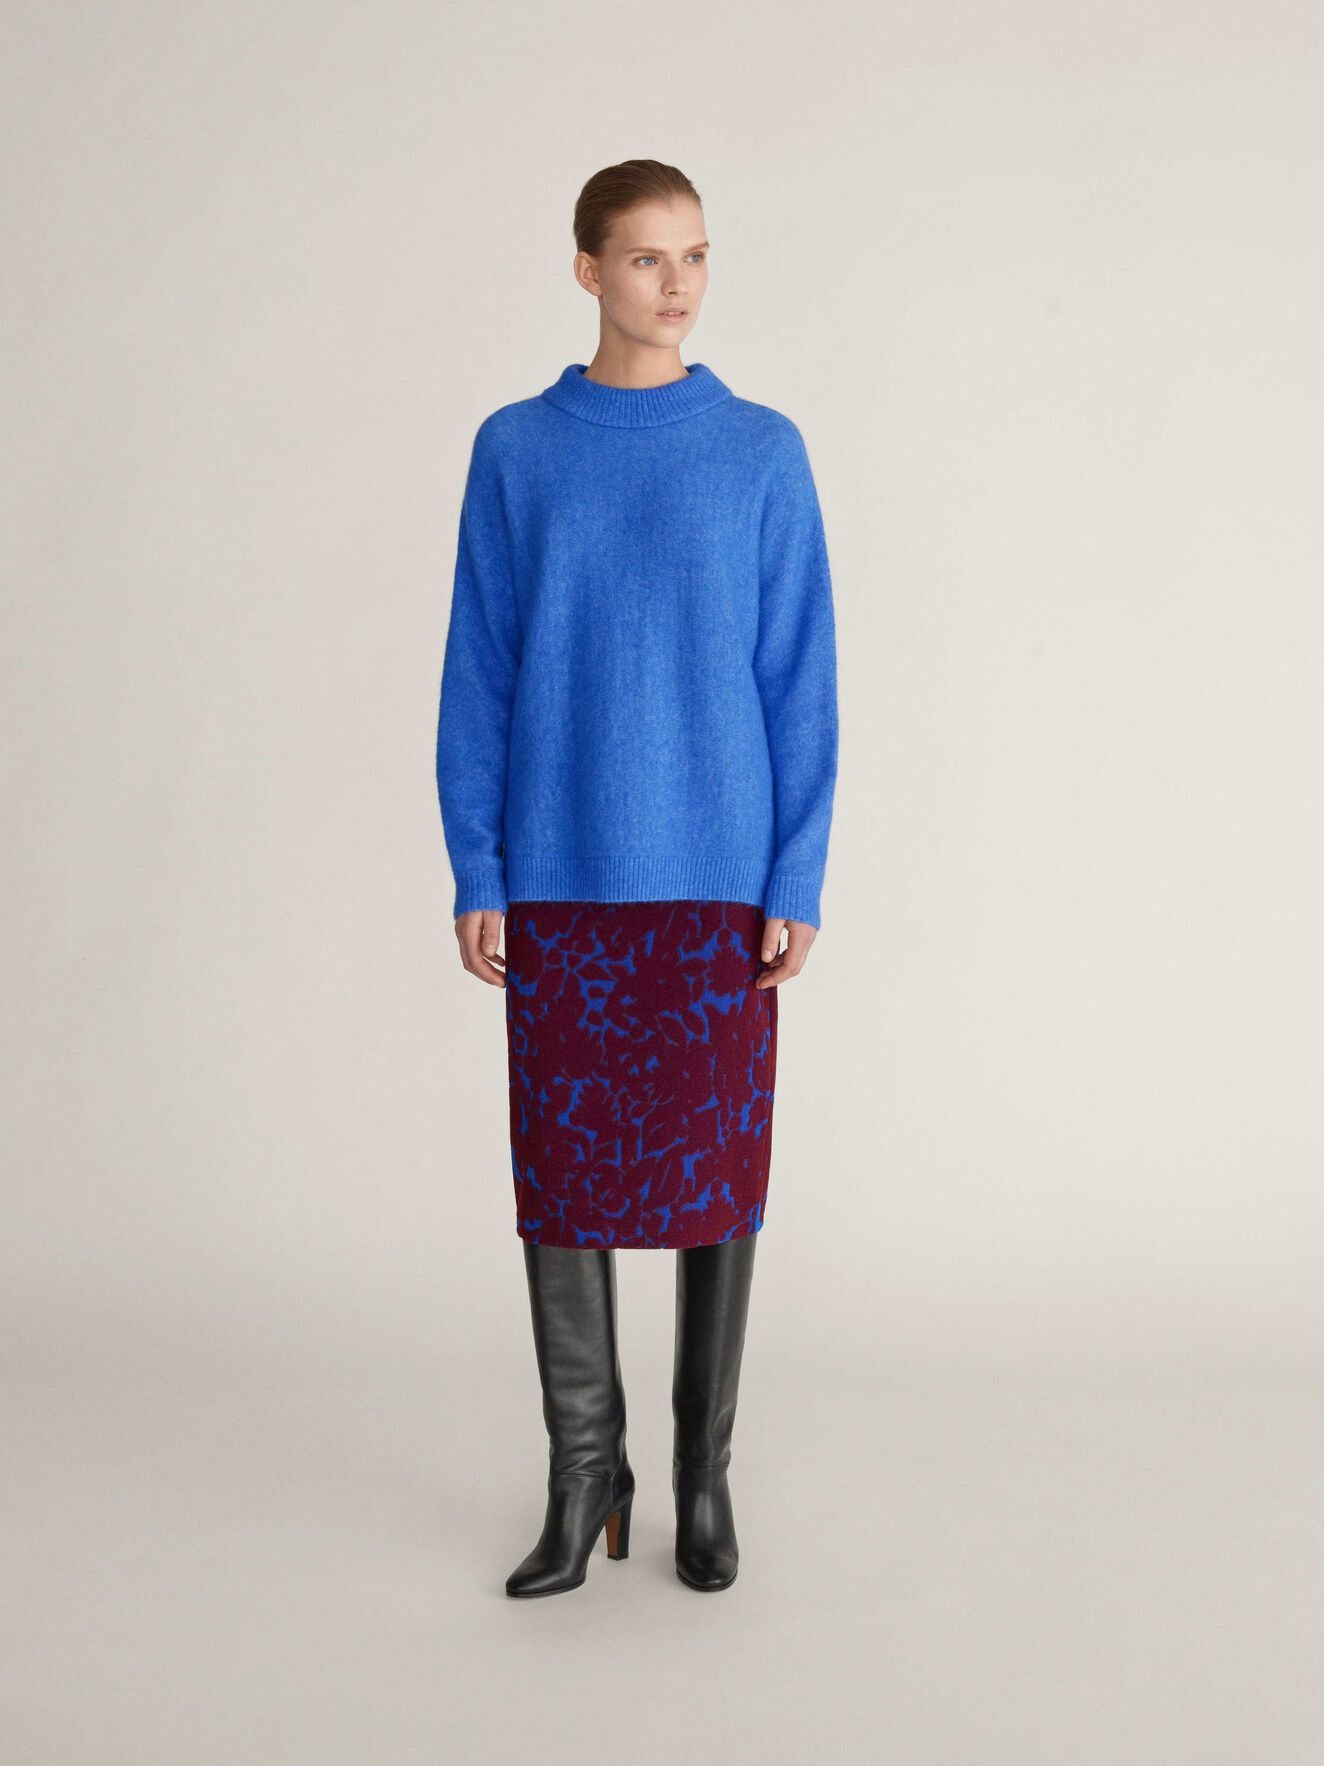 Gwyllen Pullover in Pop Blue from Tiger of Sweden